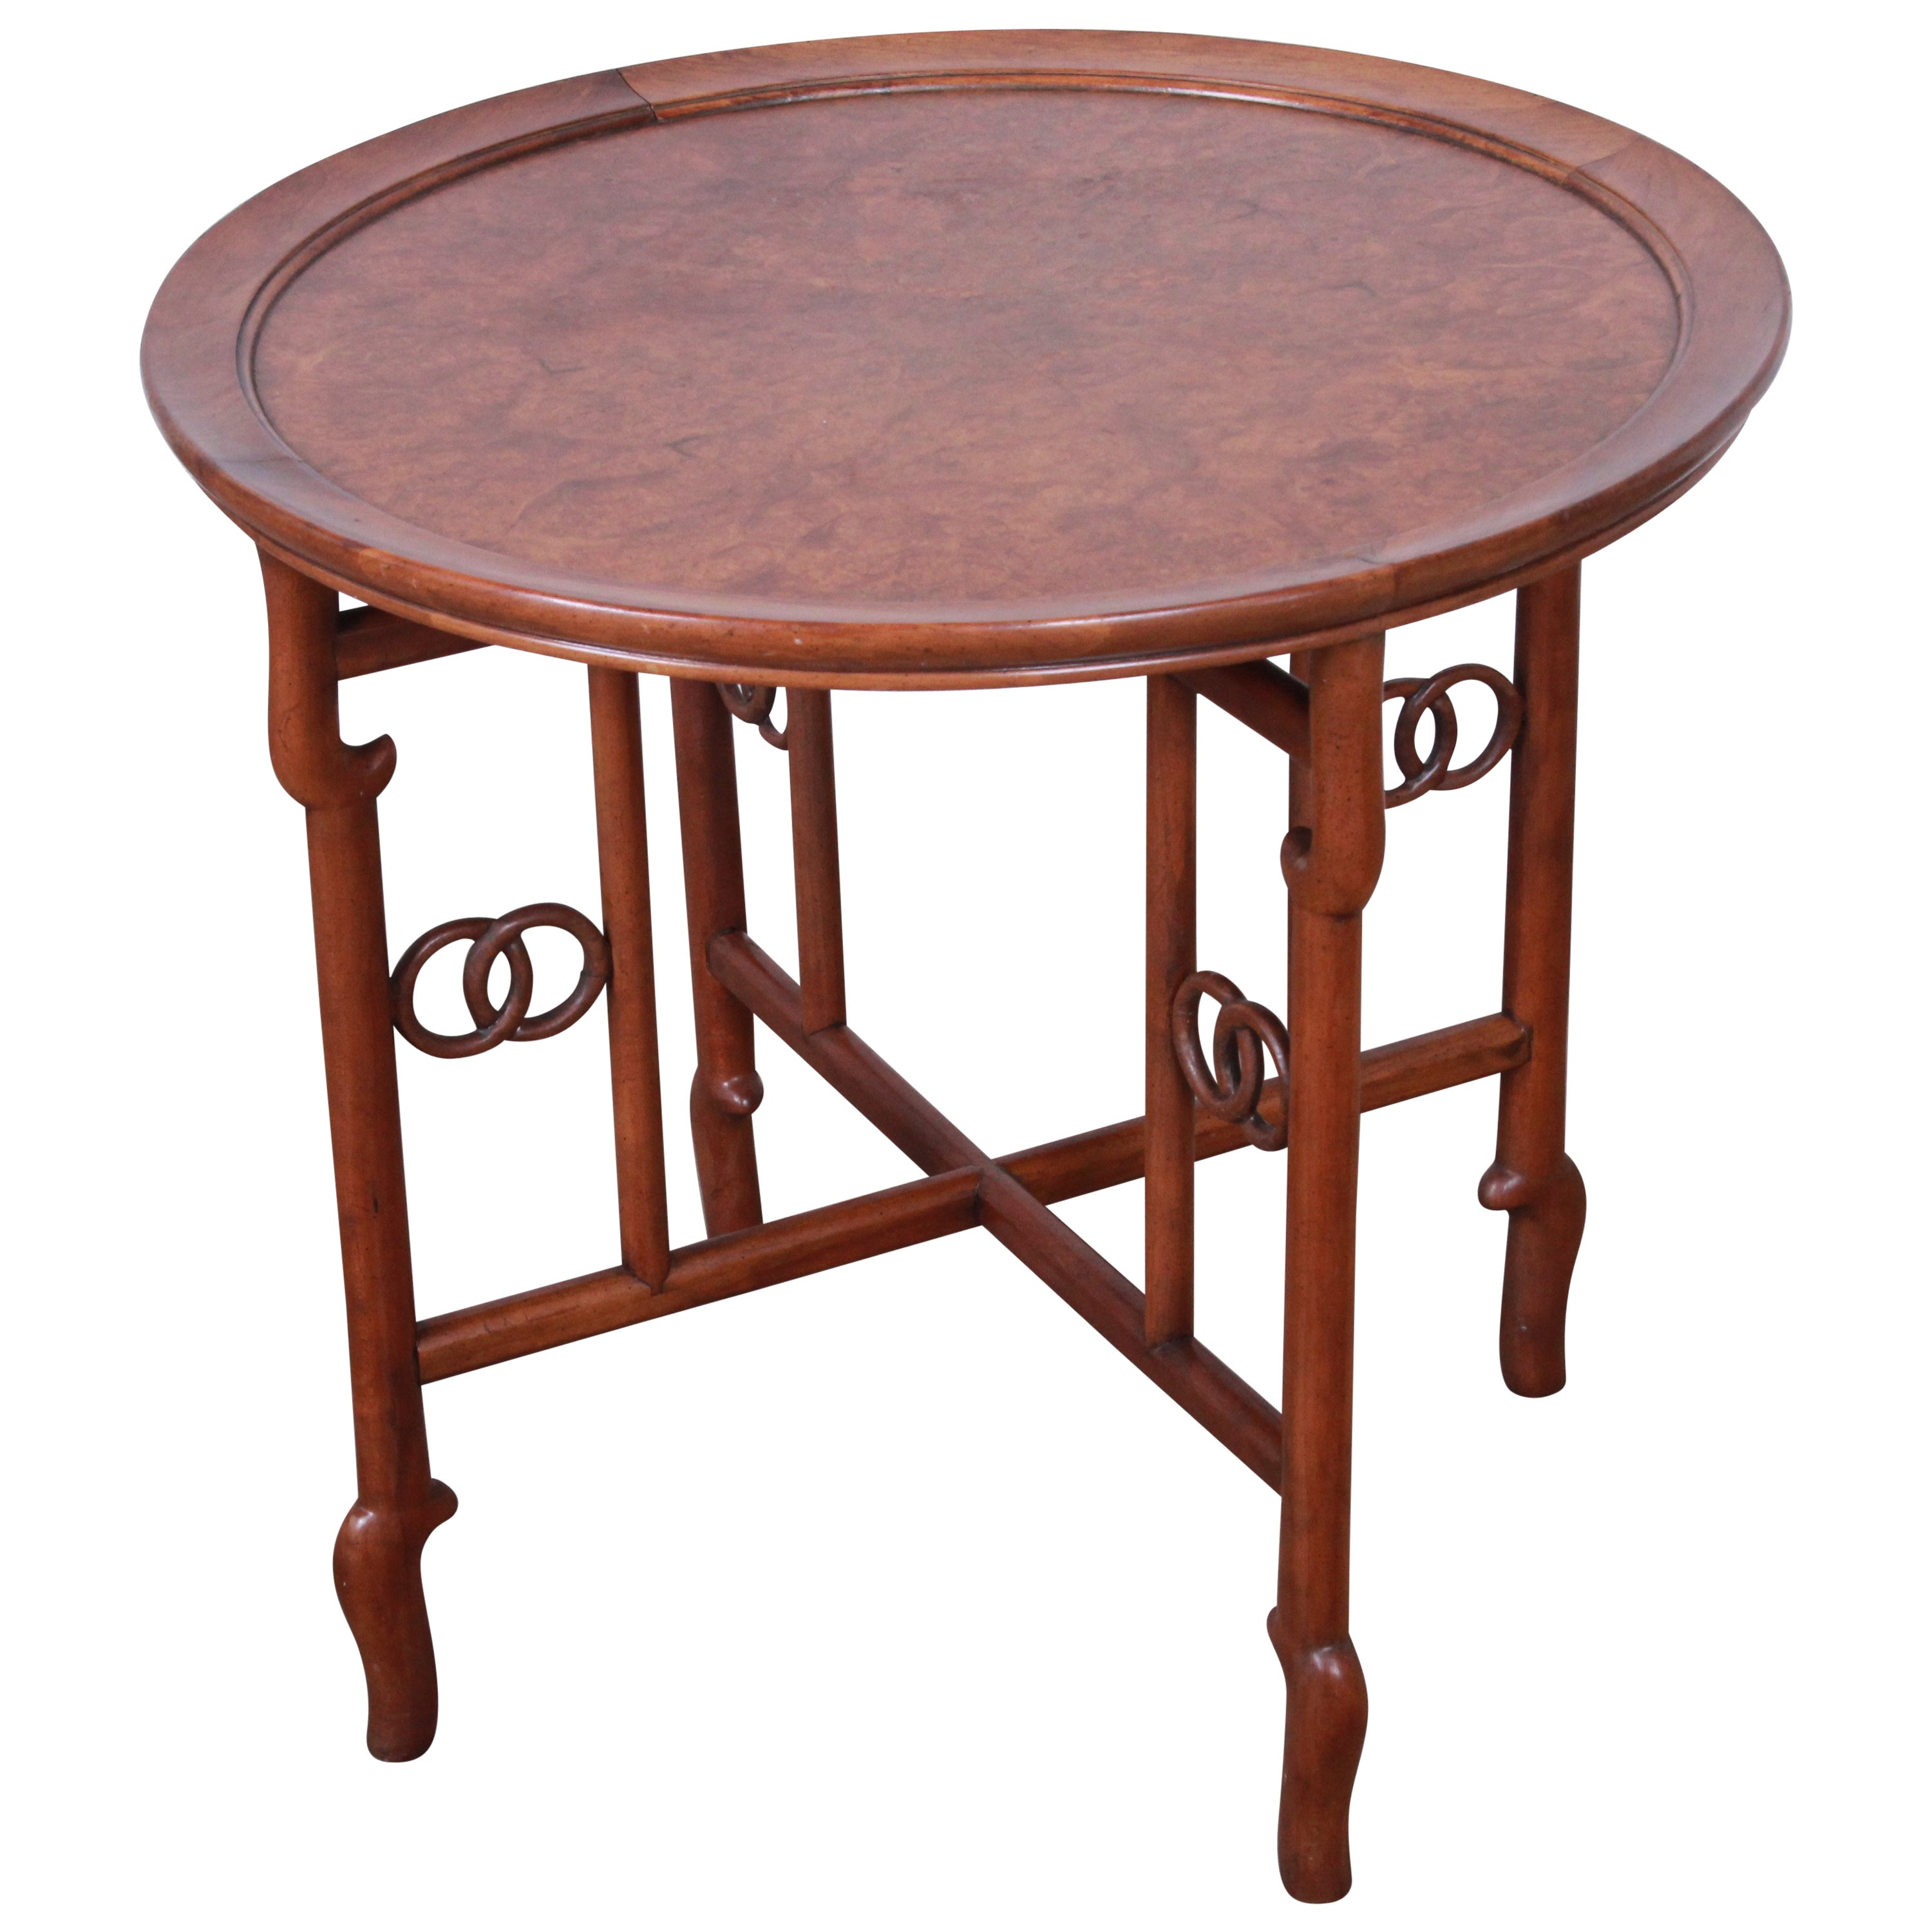 Michael Taylor Baker Far East Collection Walnut and Burl Wood Occasional Table